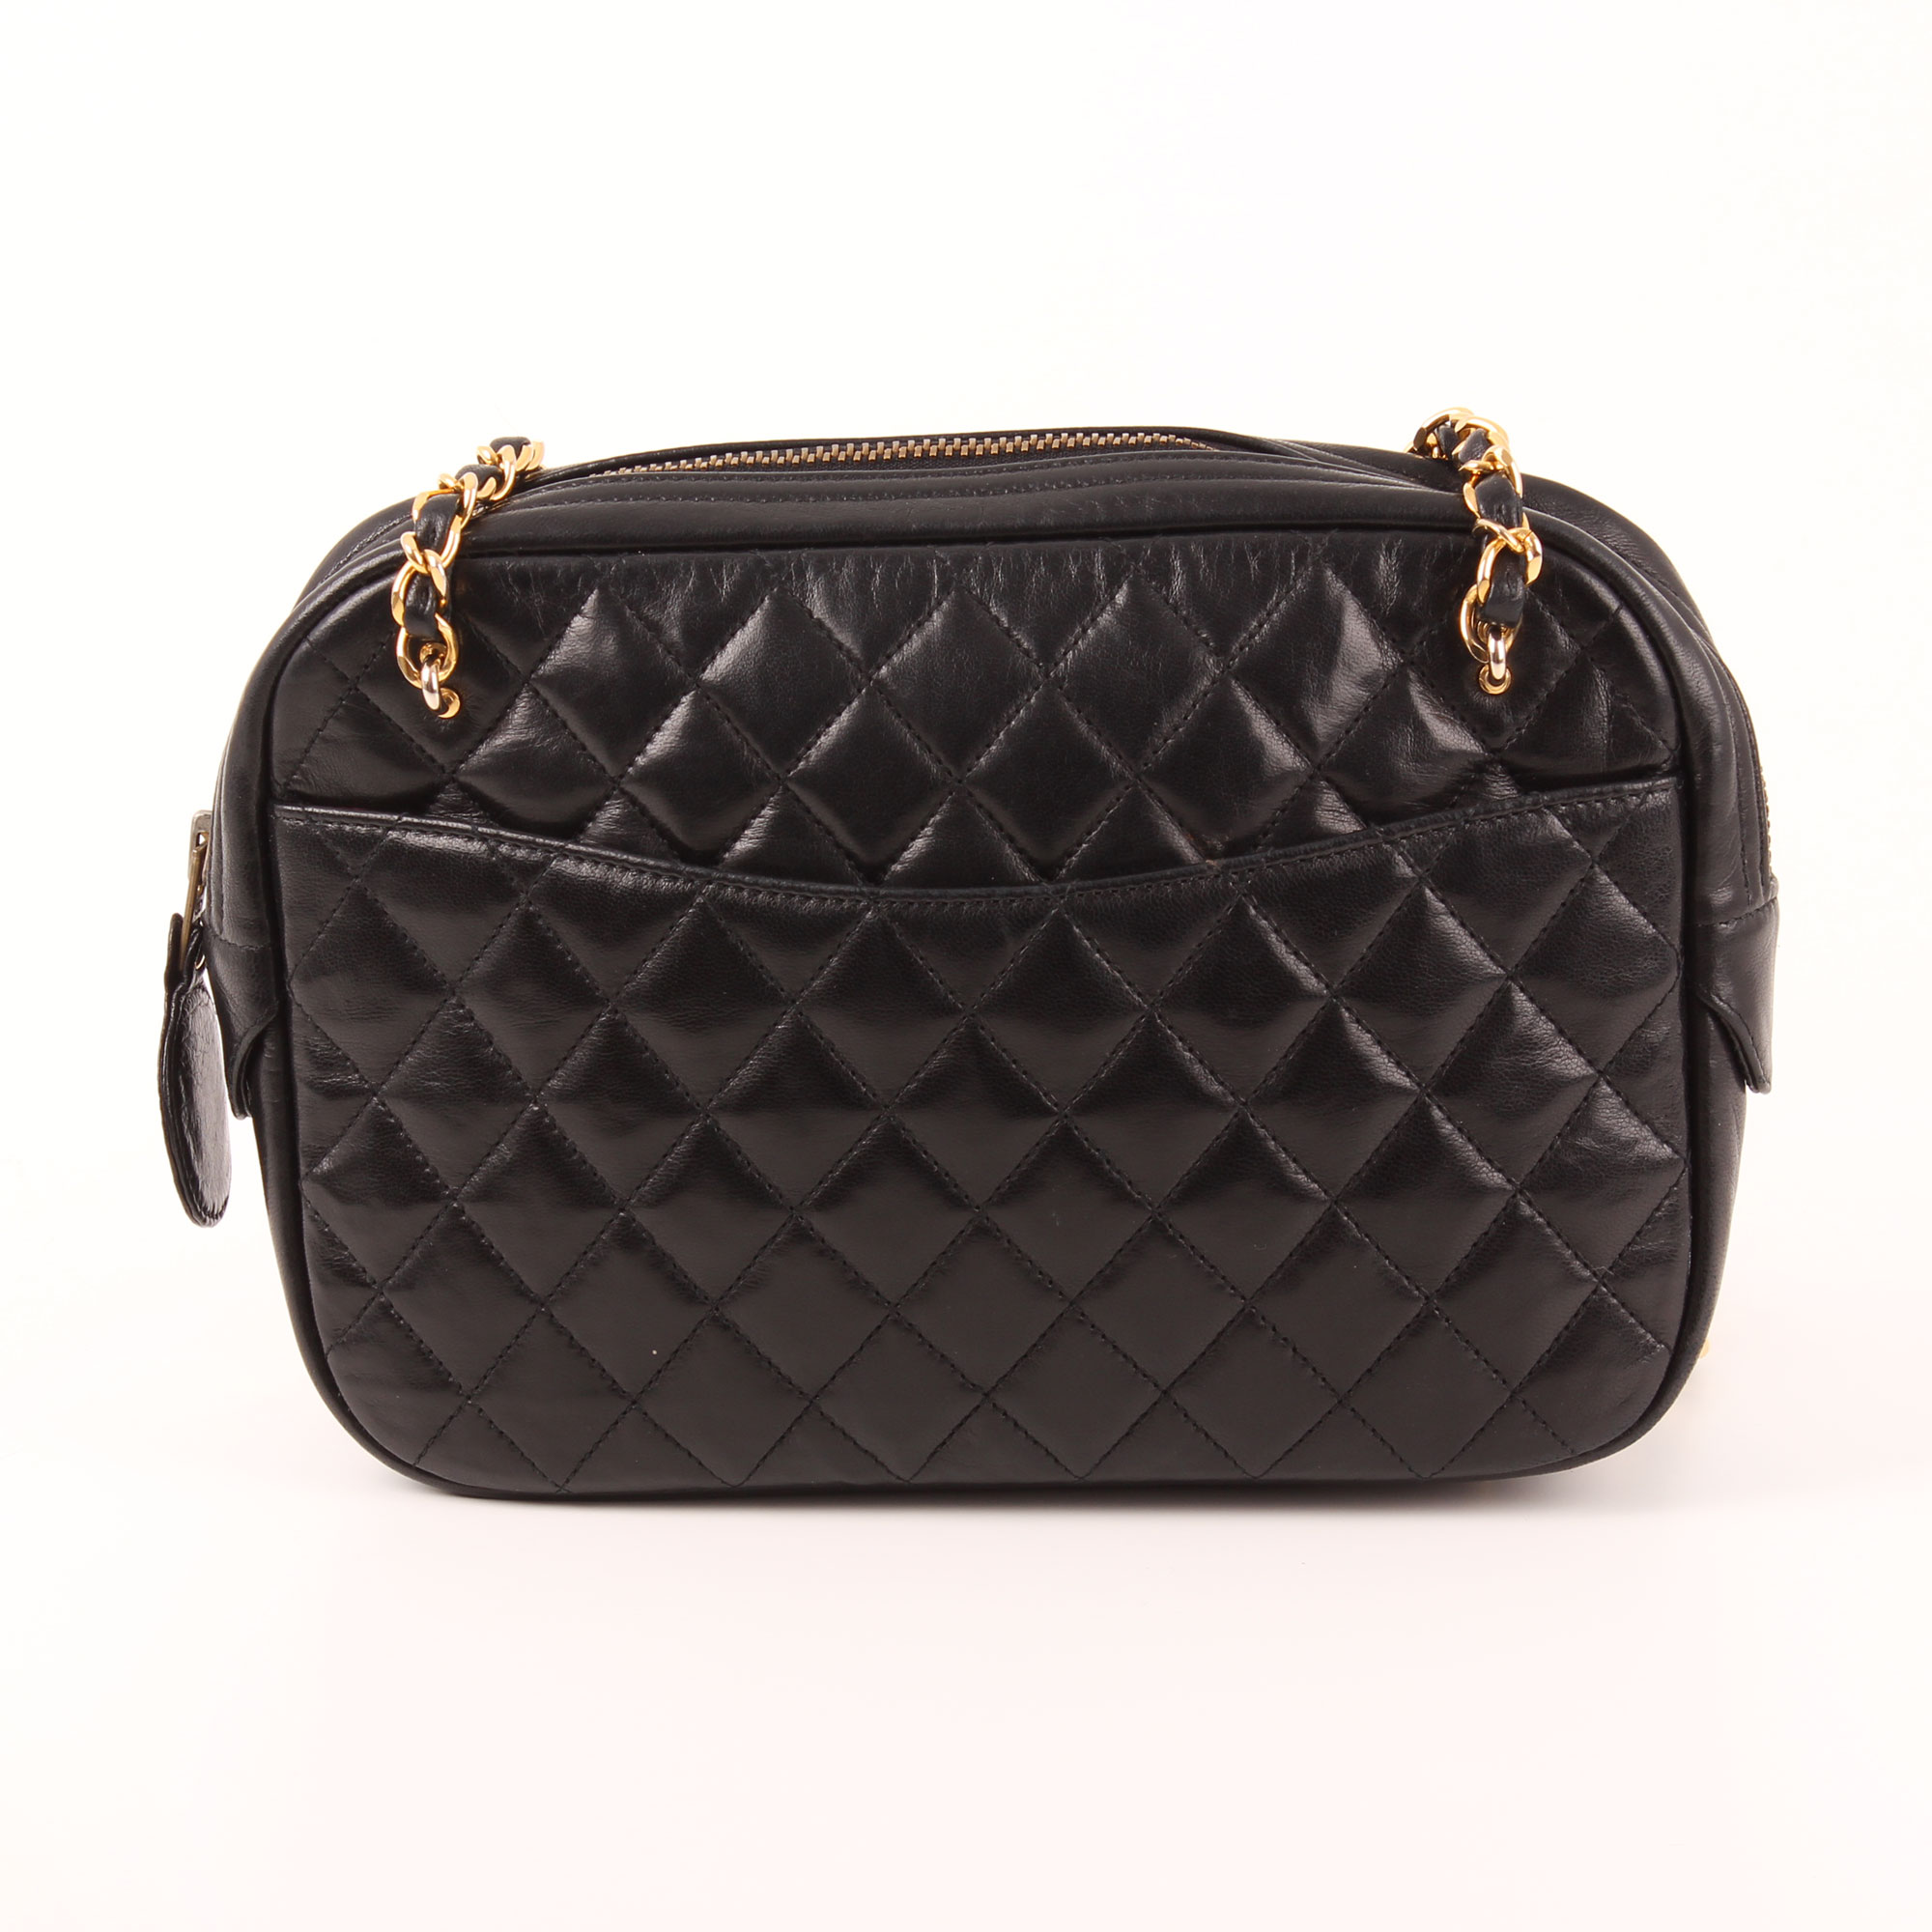 44ba0d9da30f78 Front image of chanel camera bag lambskin black double chain gold